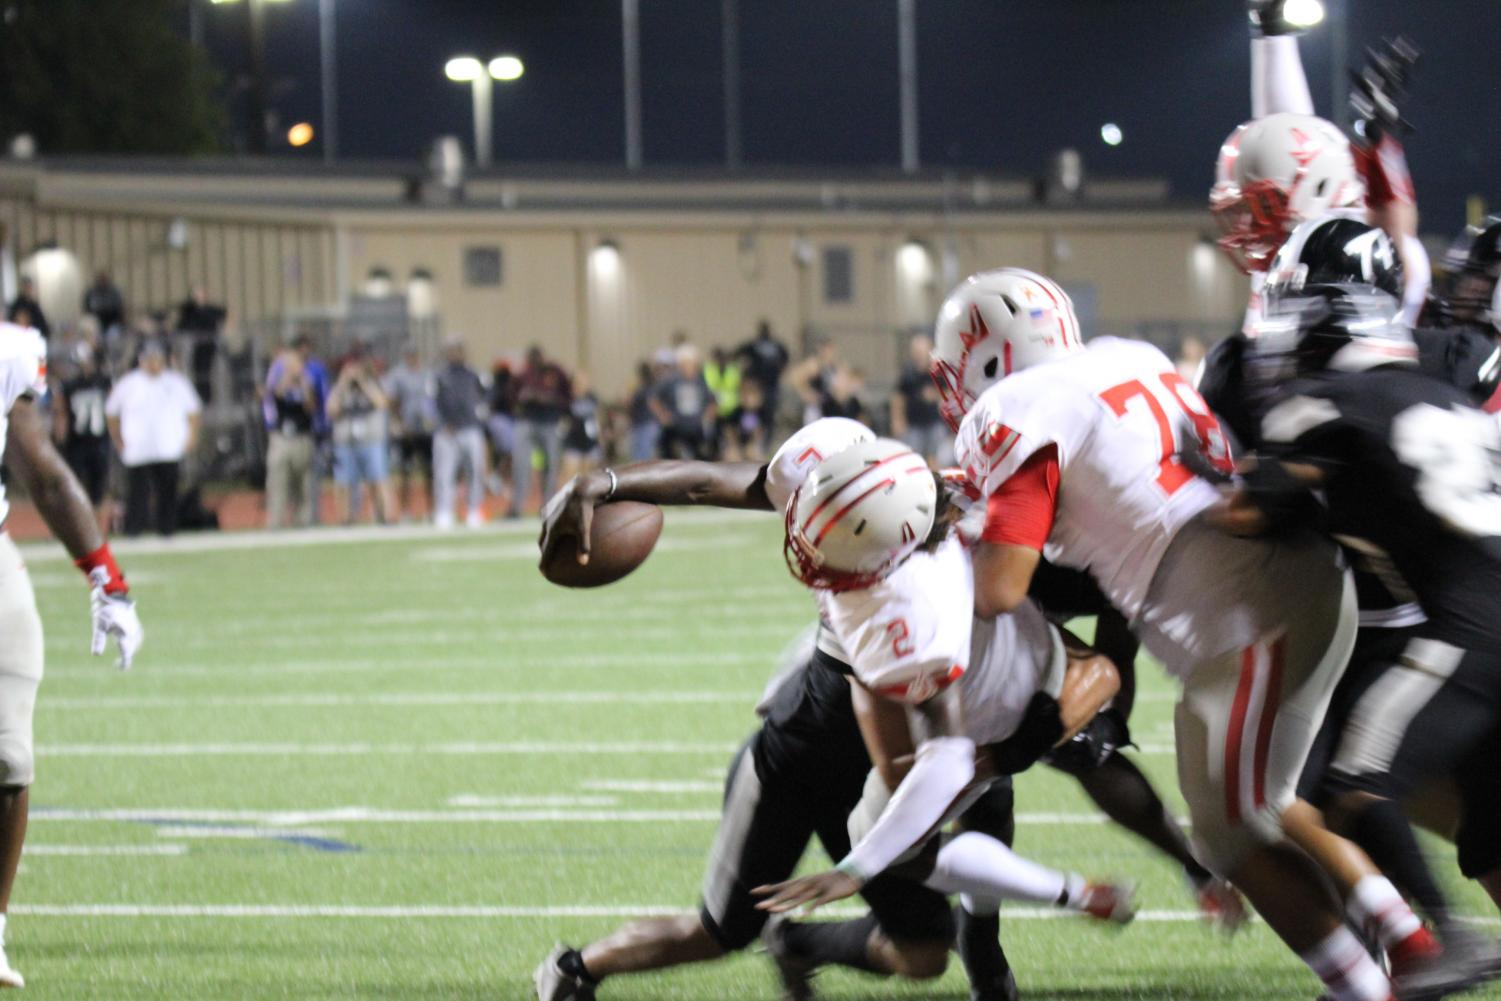 Senior Mike Chandler runs into the end zone to make the game winning touchdown. The Rockets won 51-48.